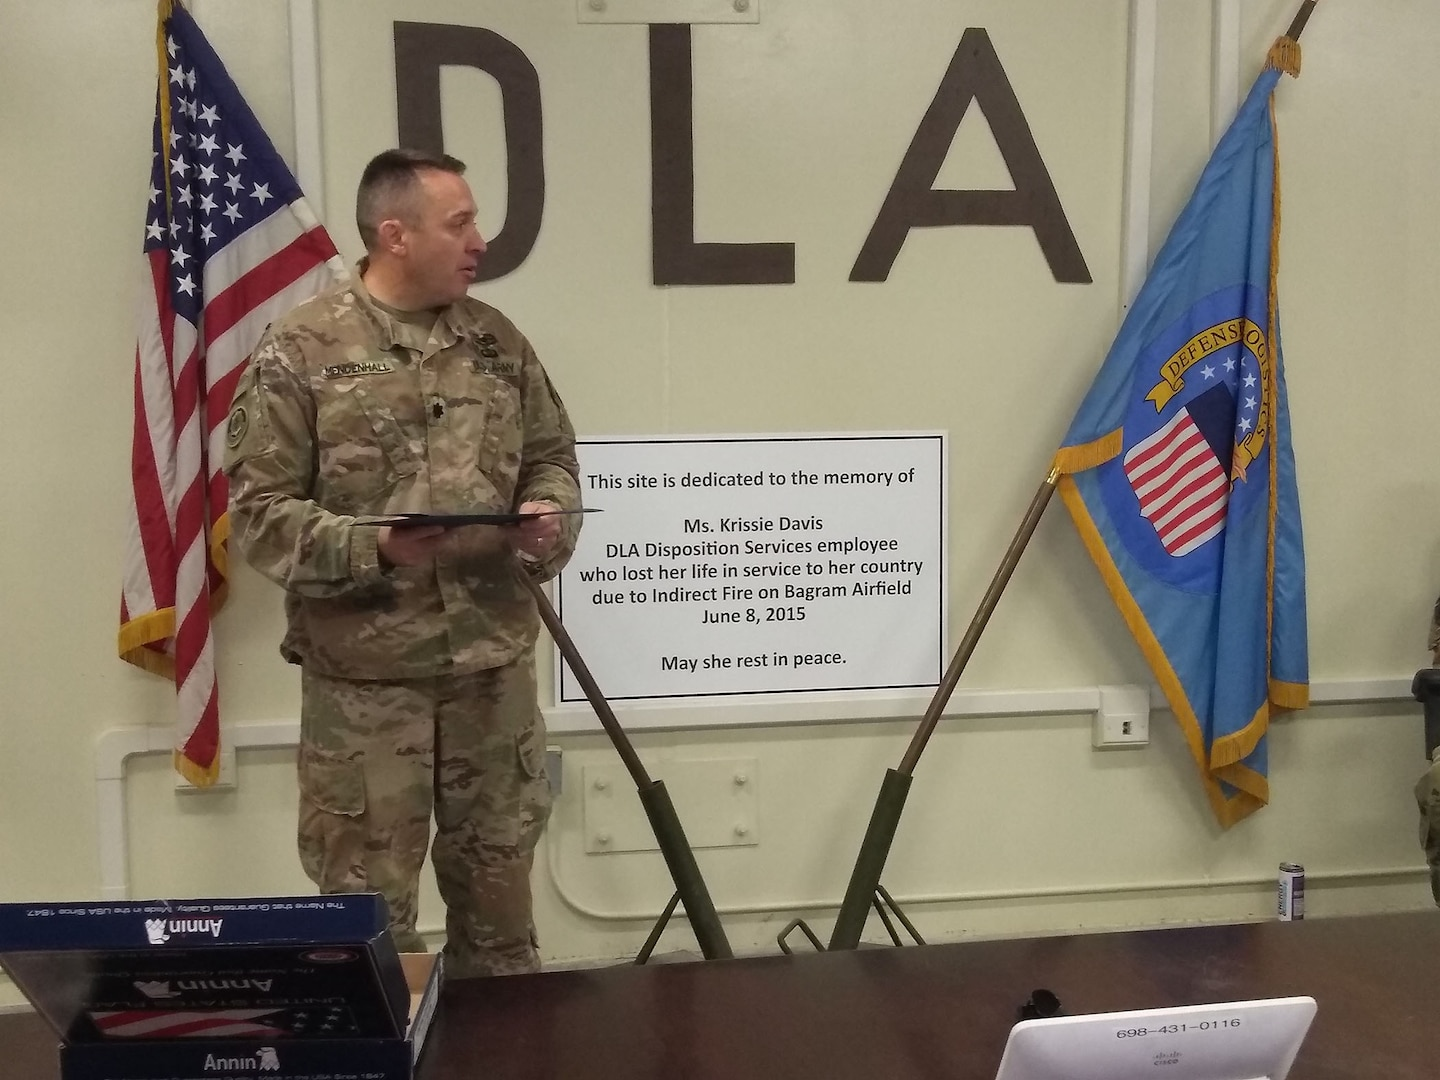 Army Lt. Col. Ryan Mendenhall, officer-in-charge for DLA Disposition Services in Afghanistan, addresses his team as they assemble by the memorial display to remember fallen employee Krissie Davis and her sacrifice.